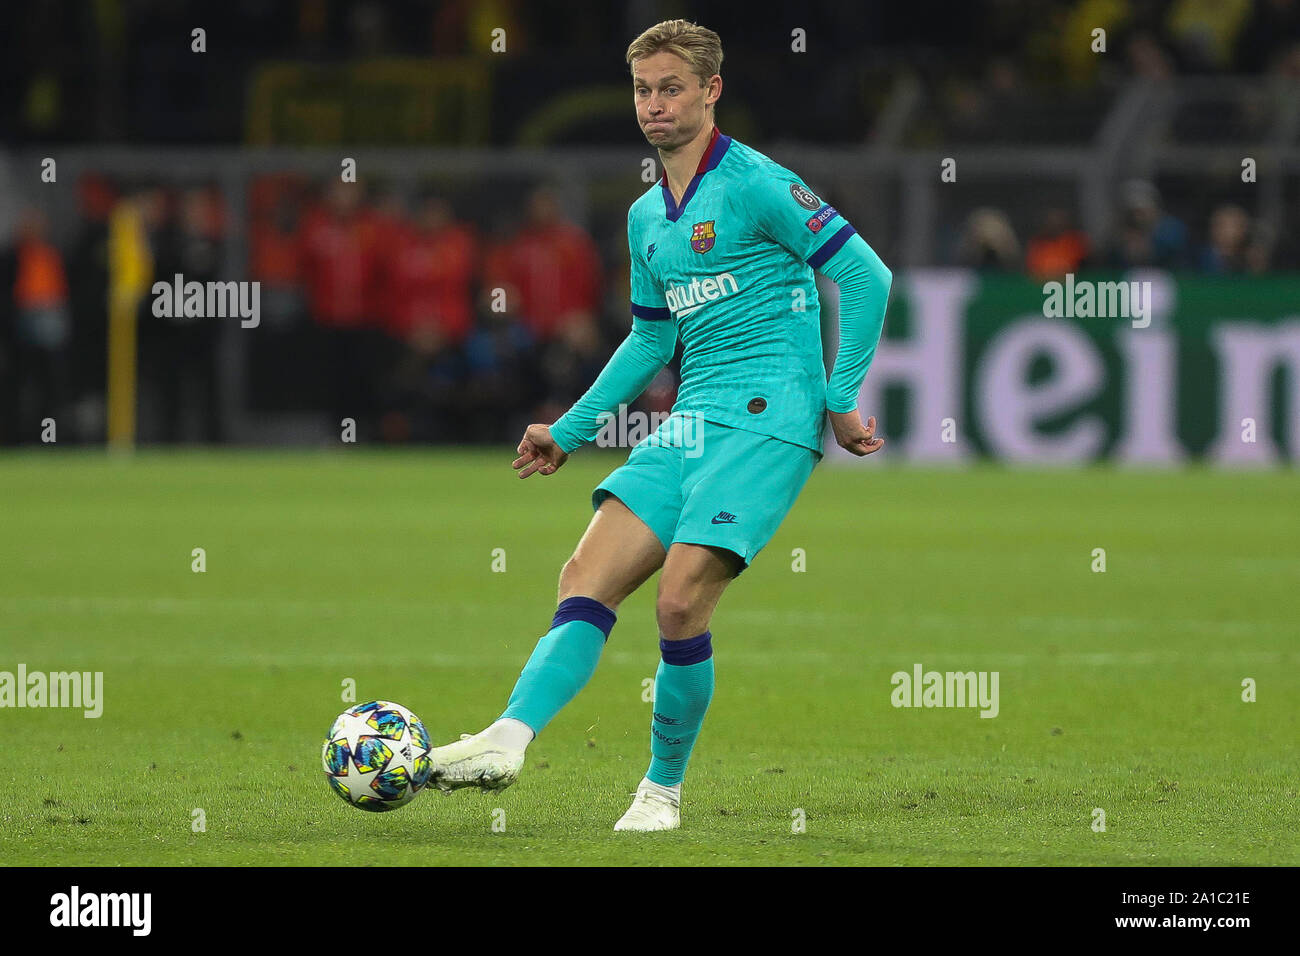 Frenkie De Jong  in FC Barcelone during the UEFA Champions League, Group F football match between Borussia Dortmund and FC Barcelona on September 17, 2019 at BVB Stadion in Dortmund, Germany - Photo Laurent Lairys / MAXPPP Stock Photo